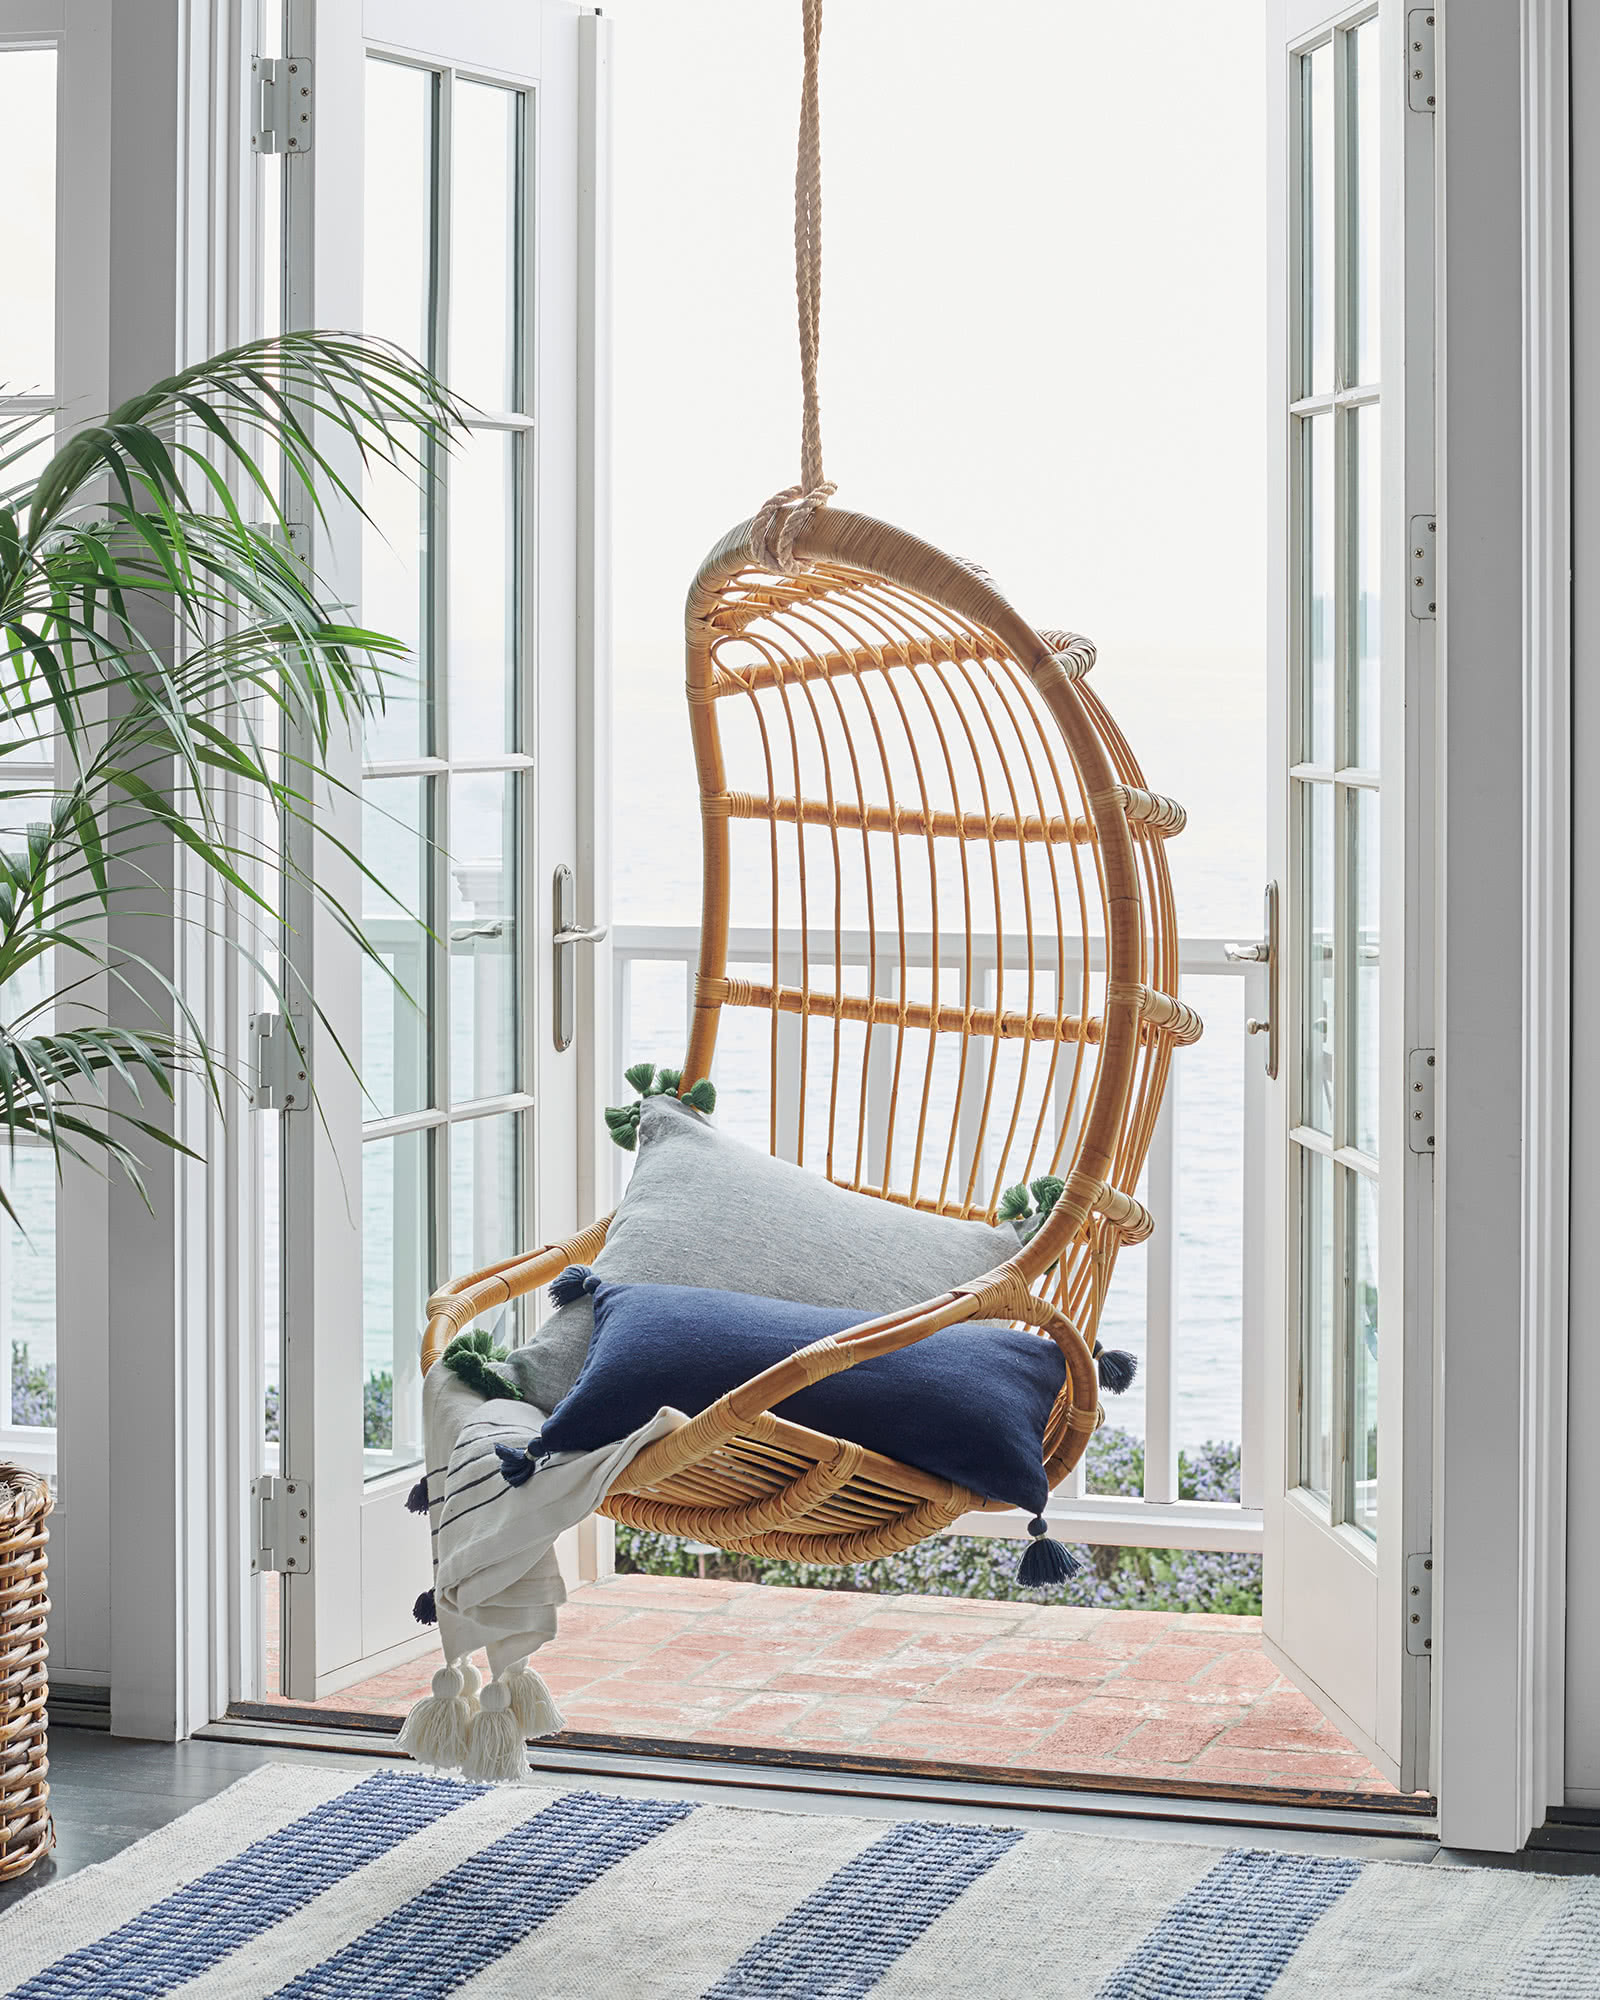 rattan hanging chair in window